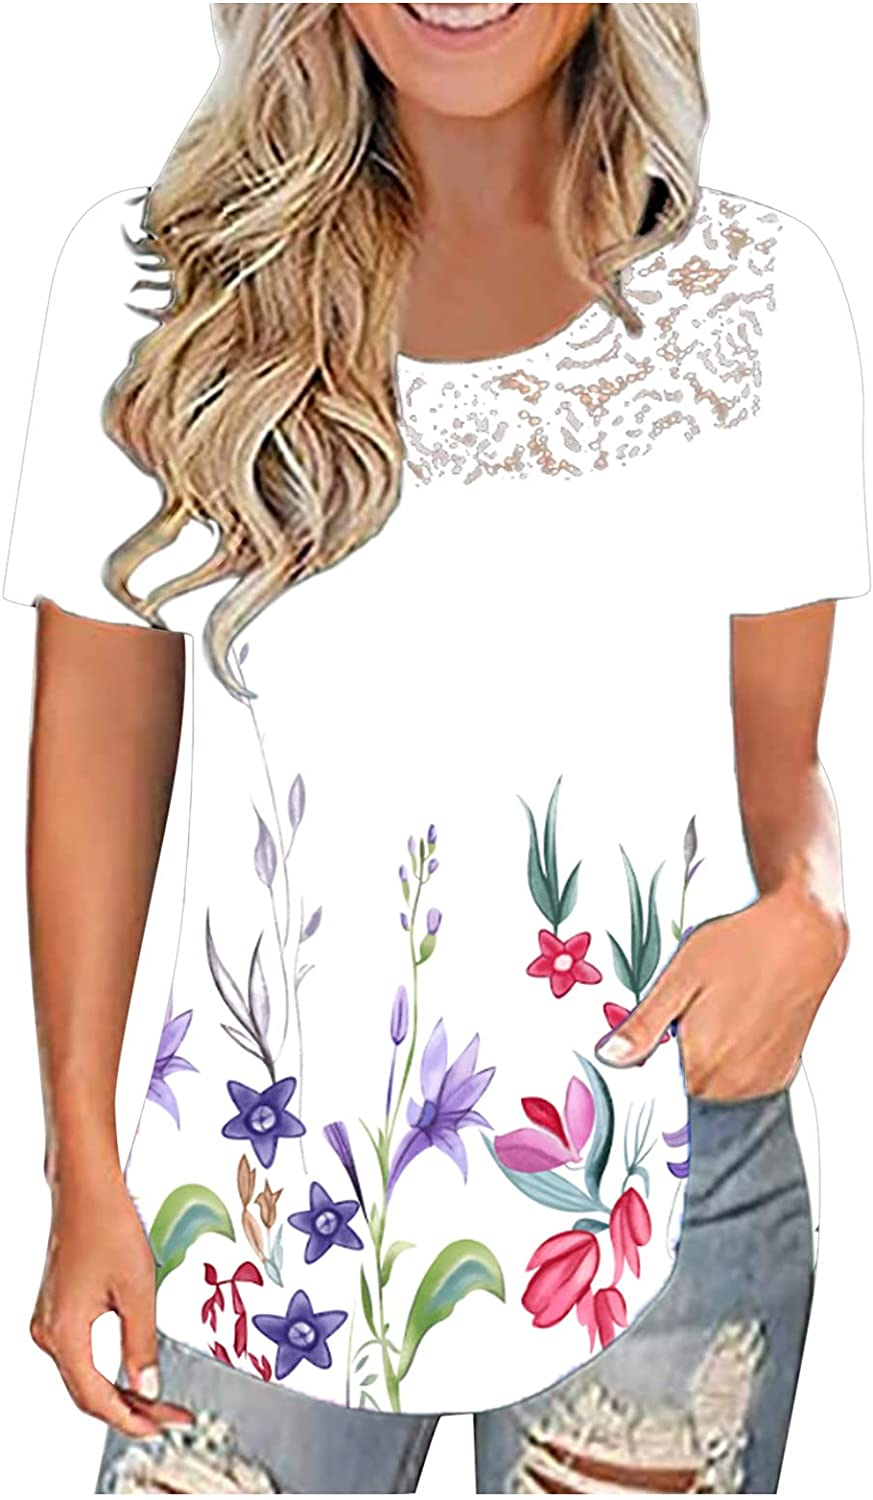 Womens Summer Tops Short Sleeve Loose Fit Casual Floral Printed Tee Shirts Tunic Lace Blouses